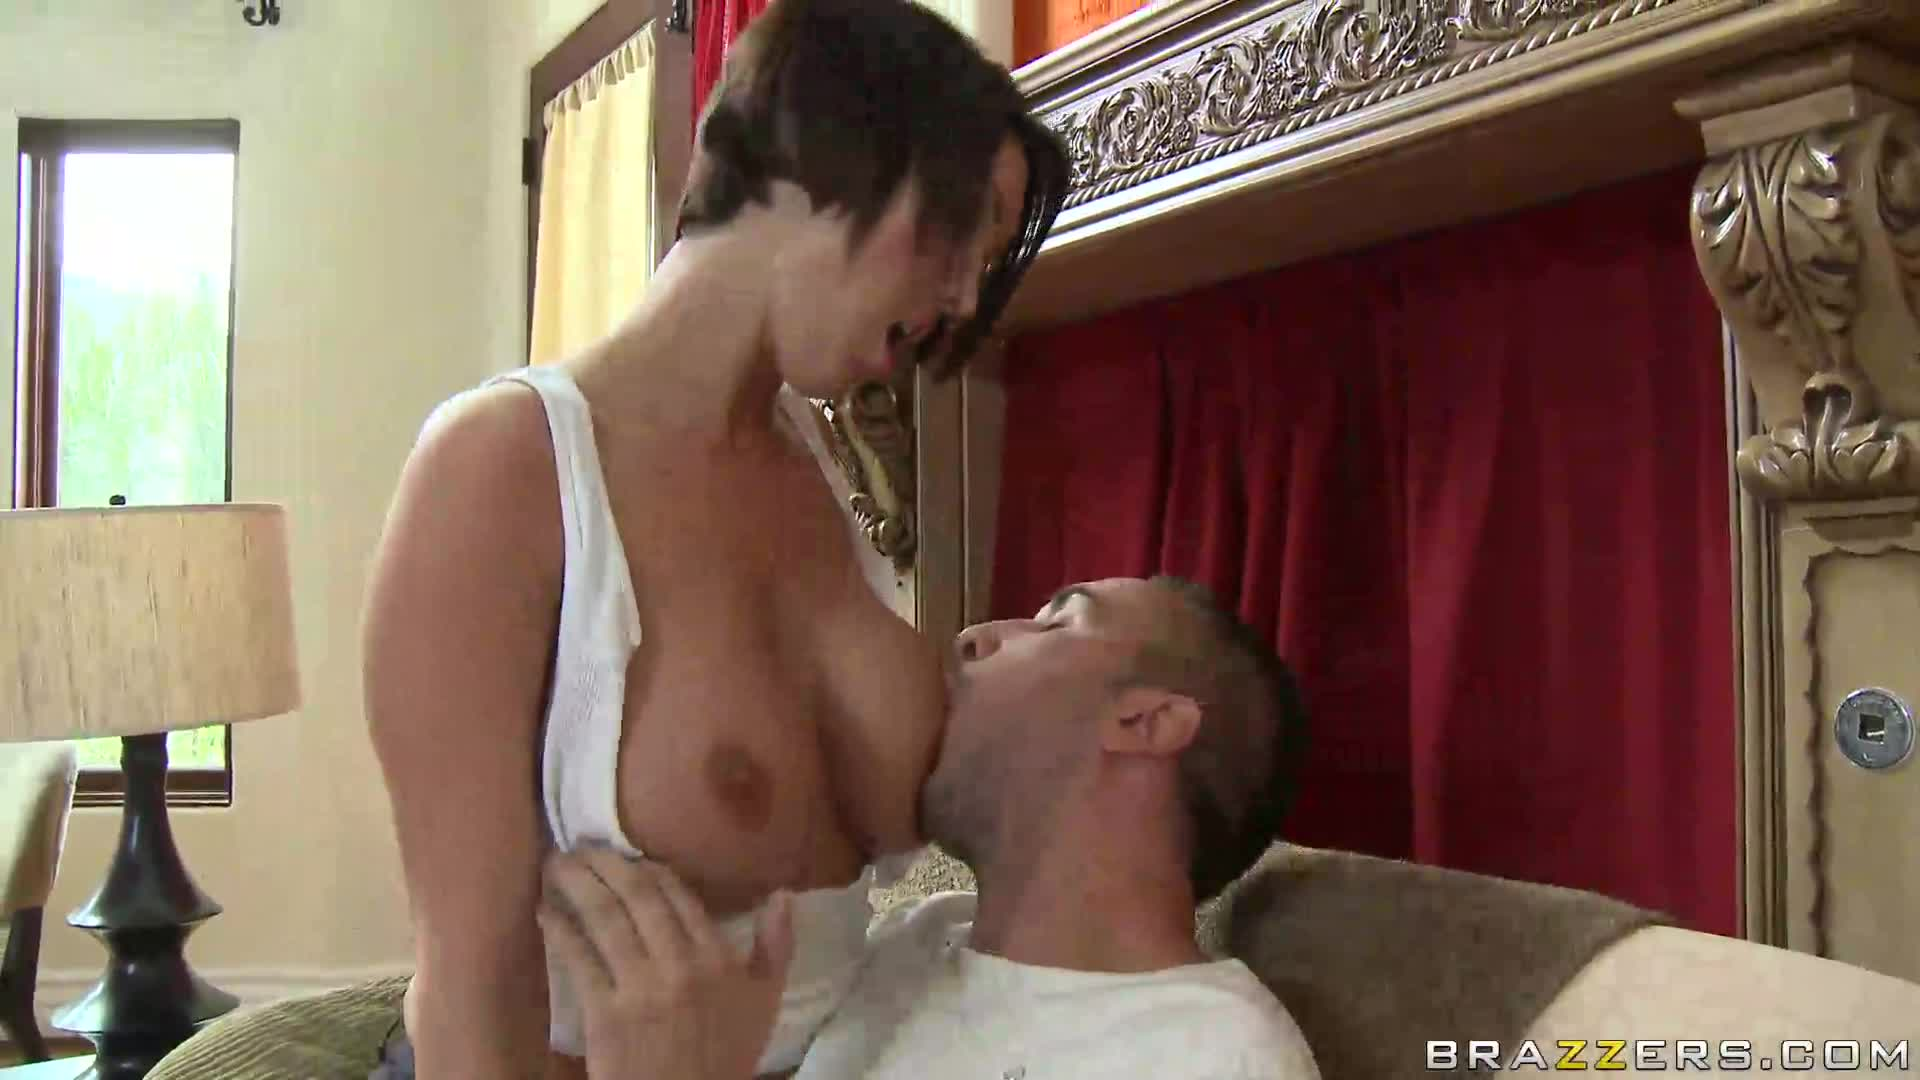 West indies girl adult sex